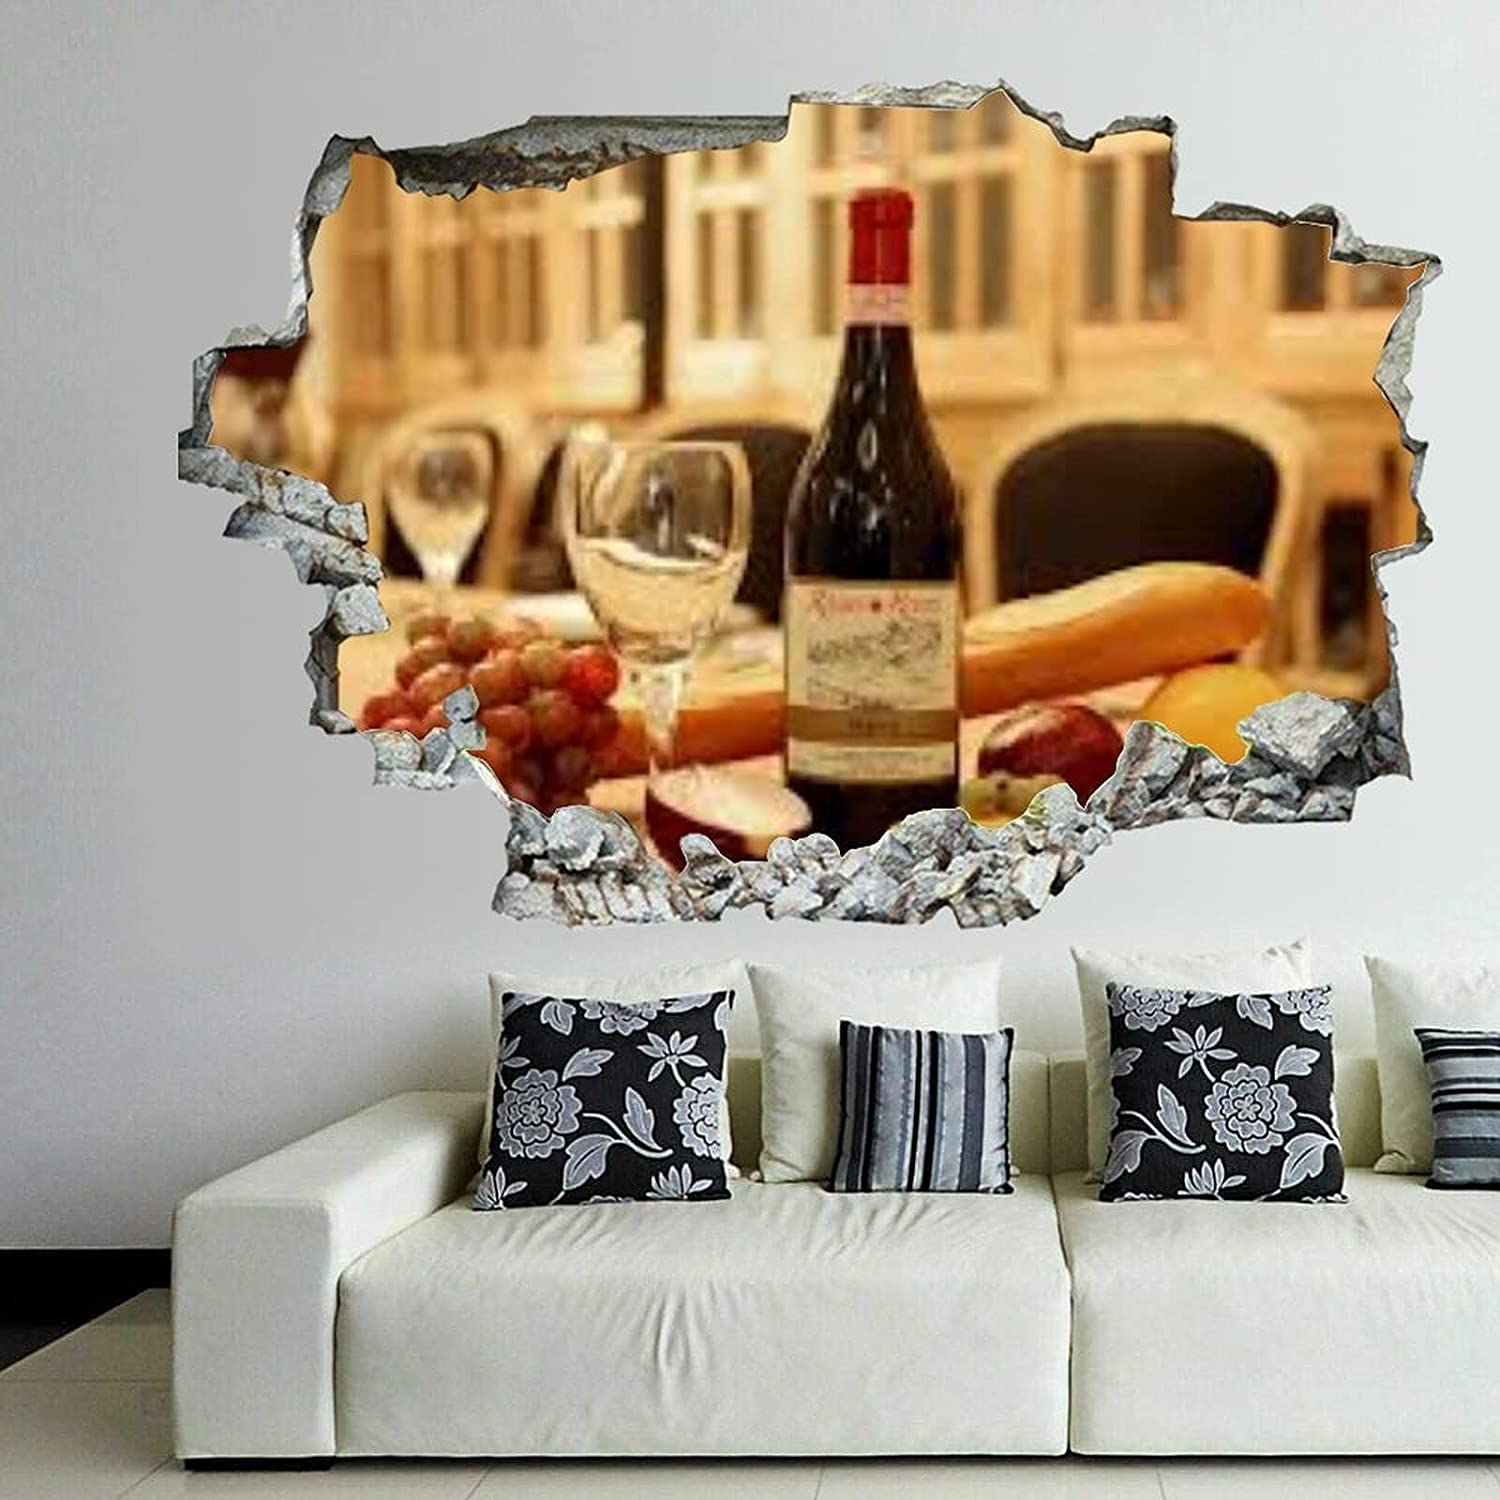 Wine Glass Daily bargain sale 3D Wall 55% OFF Art Sticker Decals Self Smash Adhesive